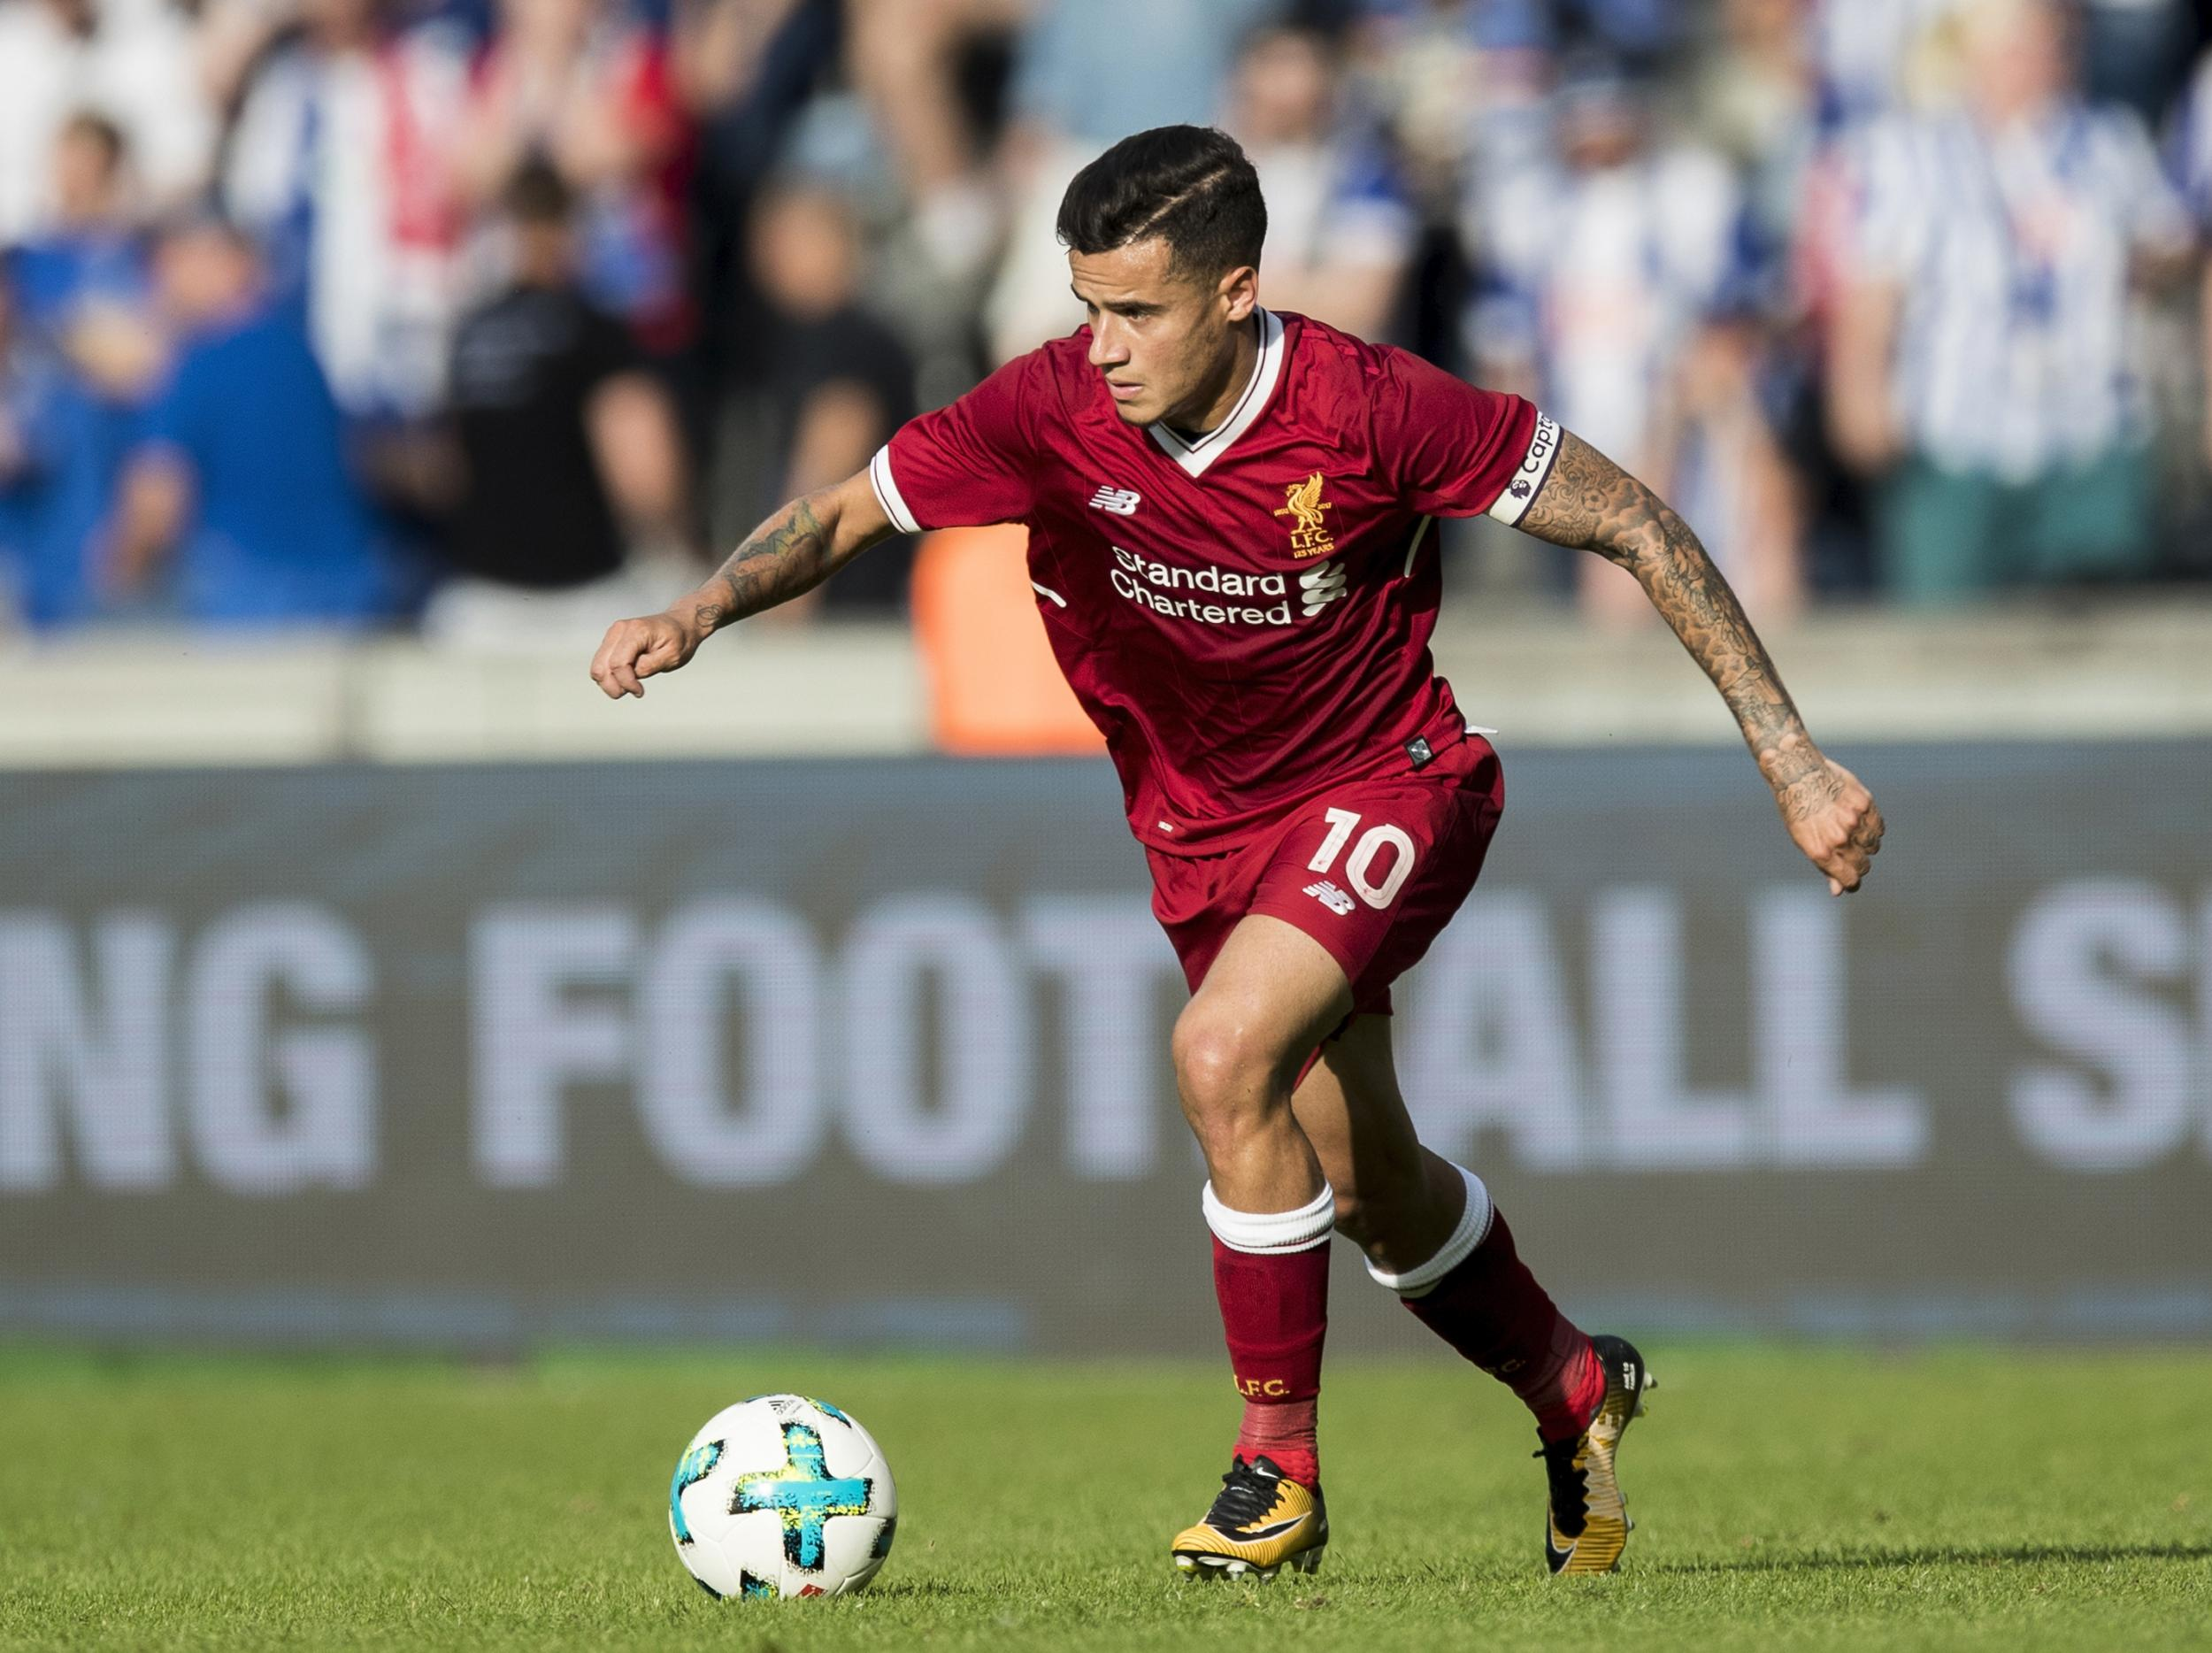 Coutinho, nuevo refuerzo del FC Barcelona. Independent.co.uk